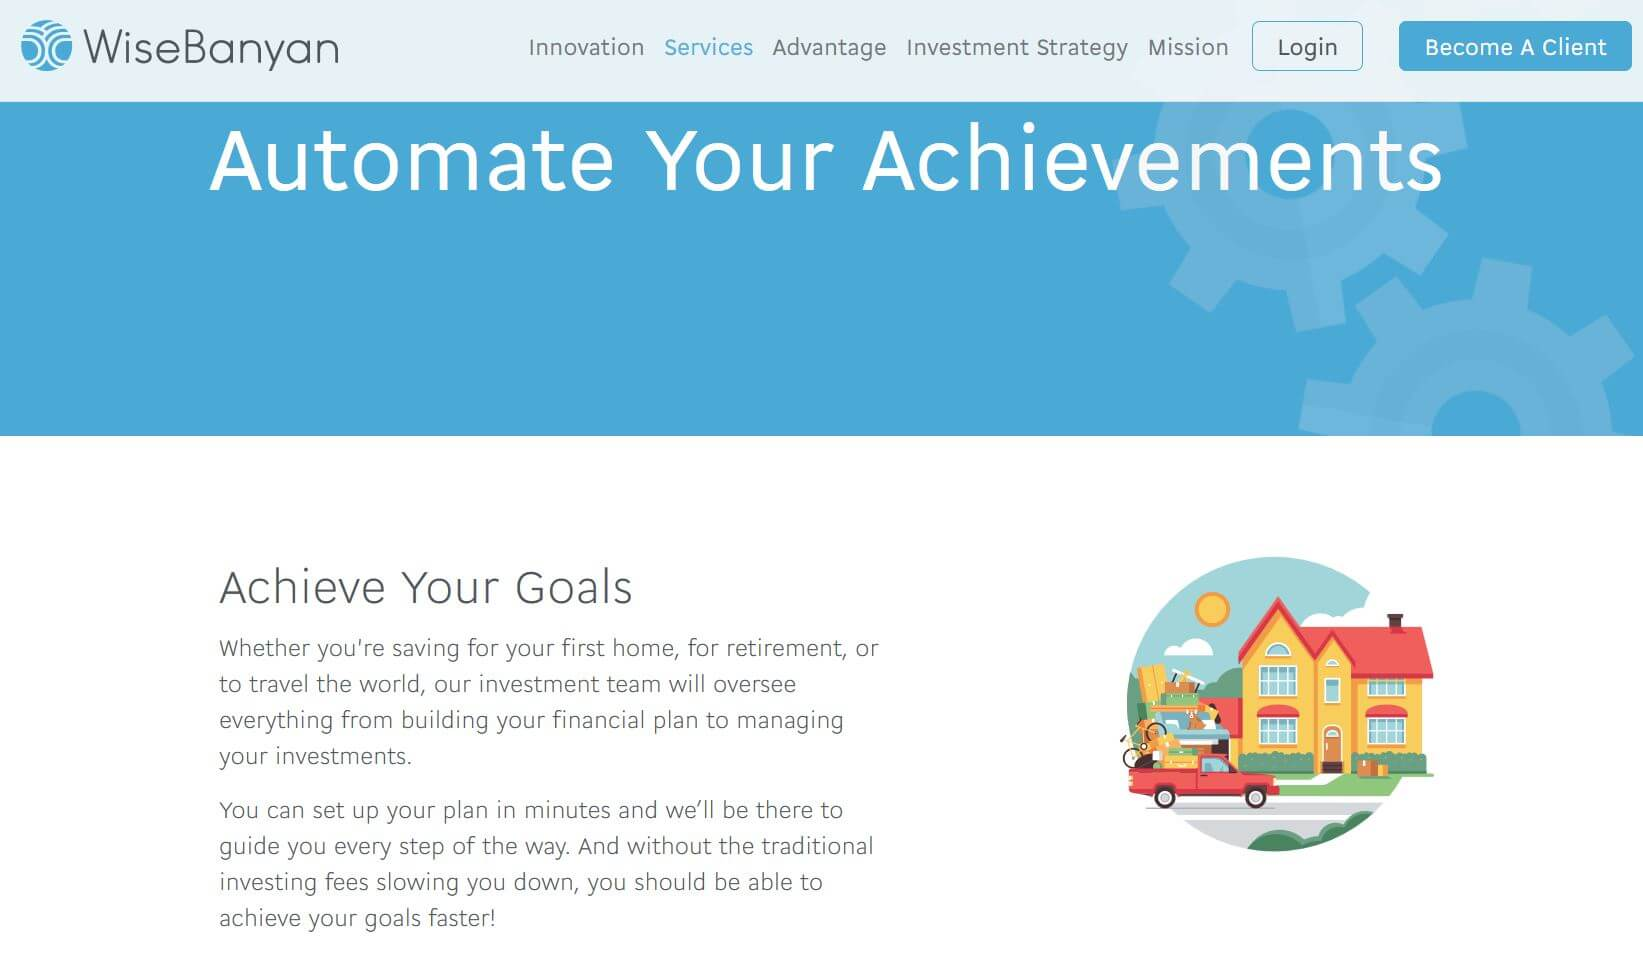 Automate Your Achievements With WiseBanyan